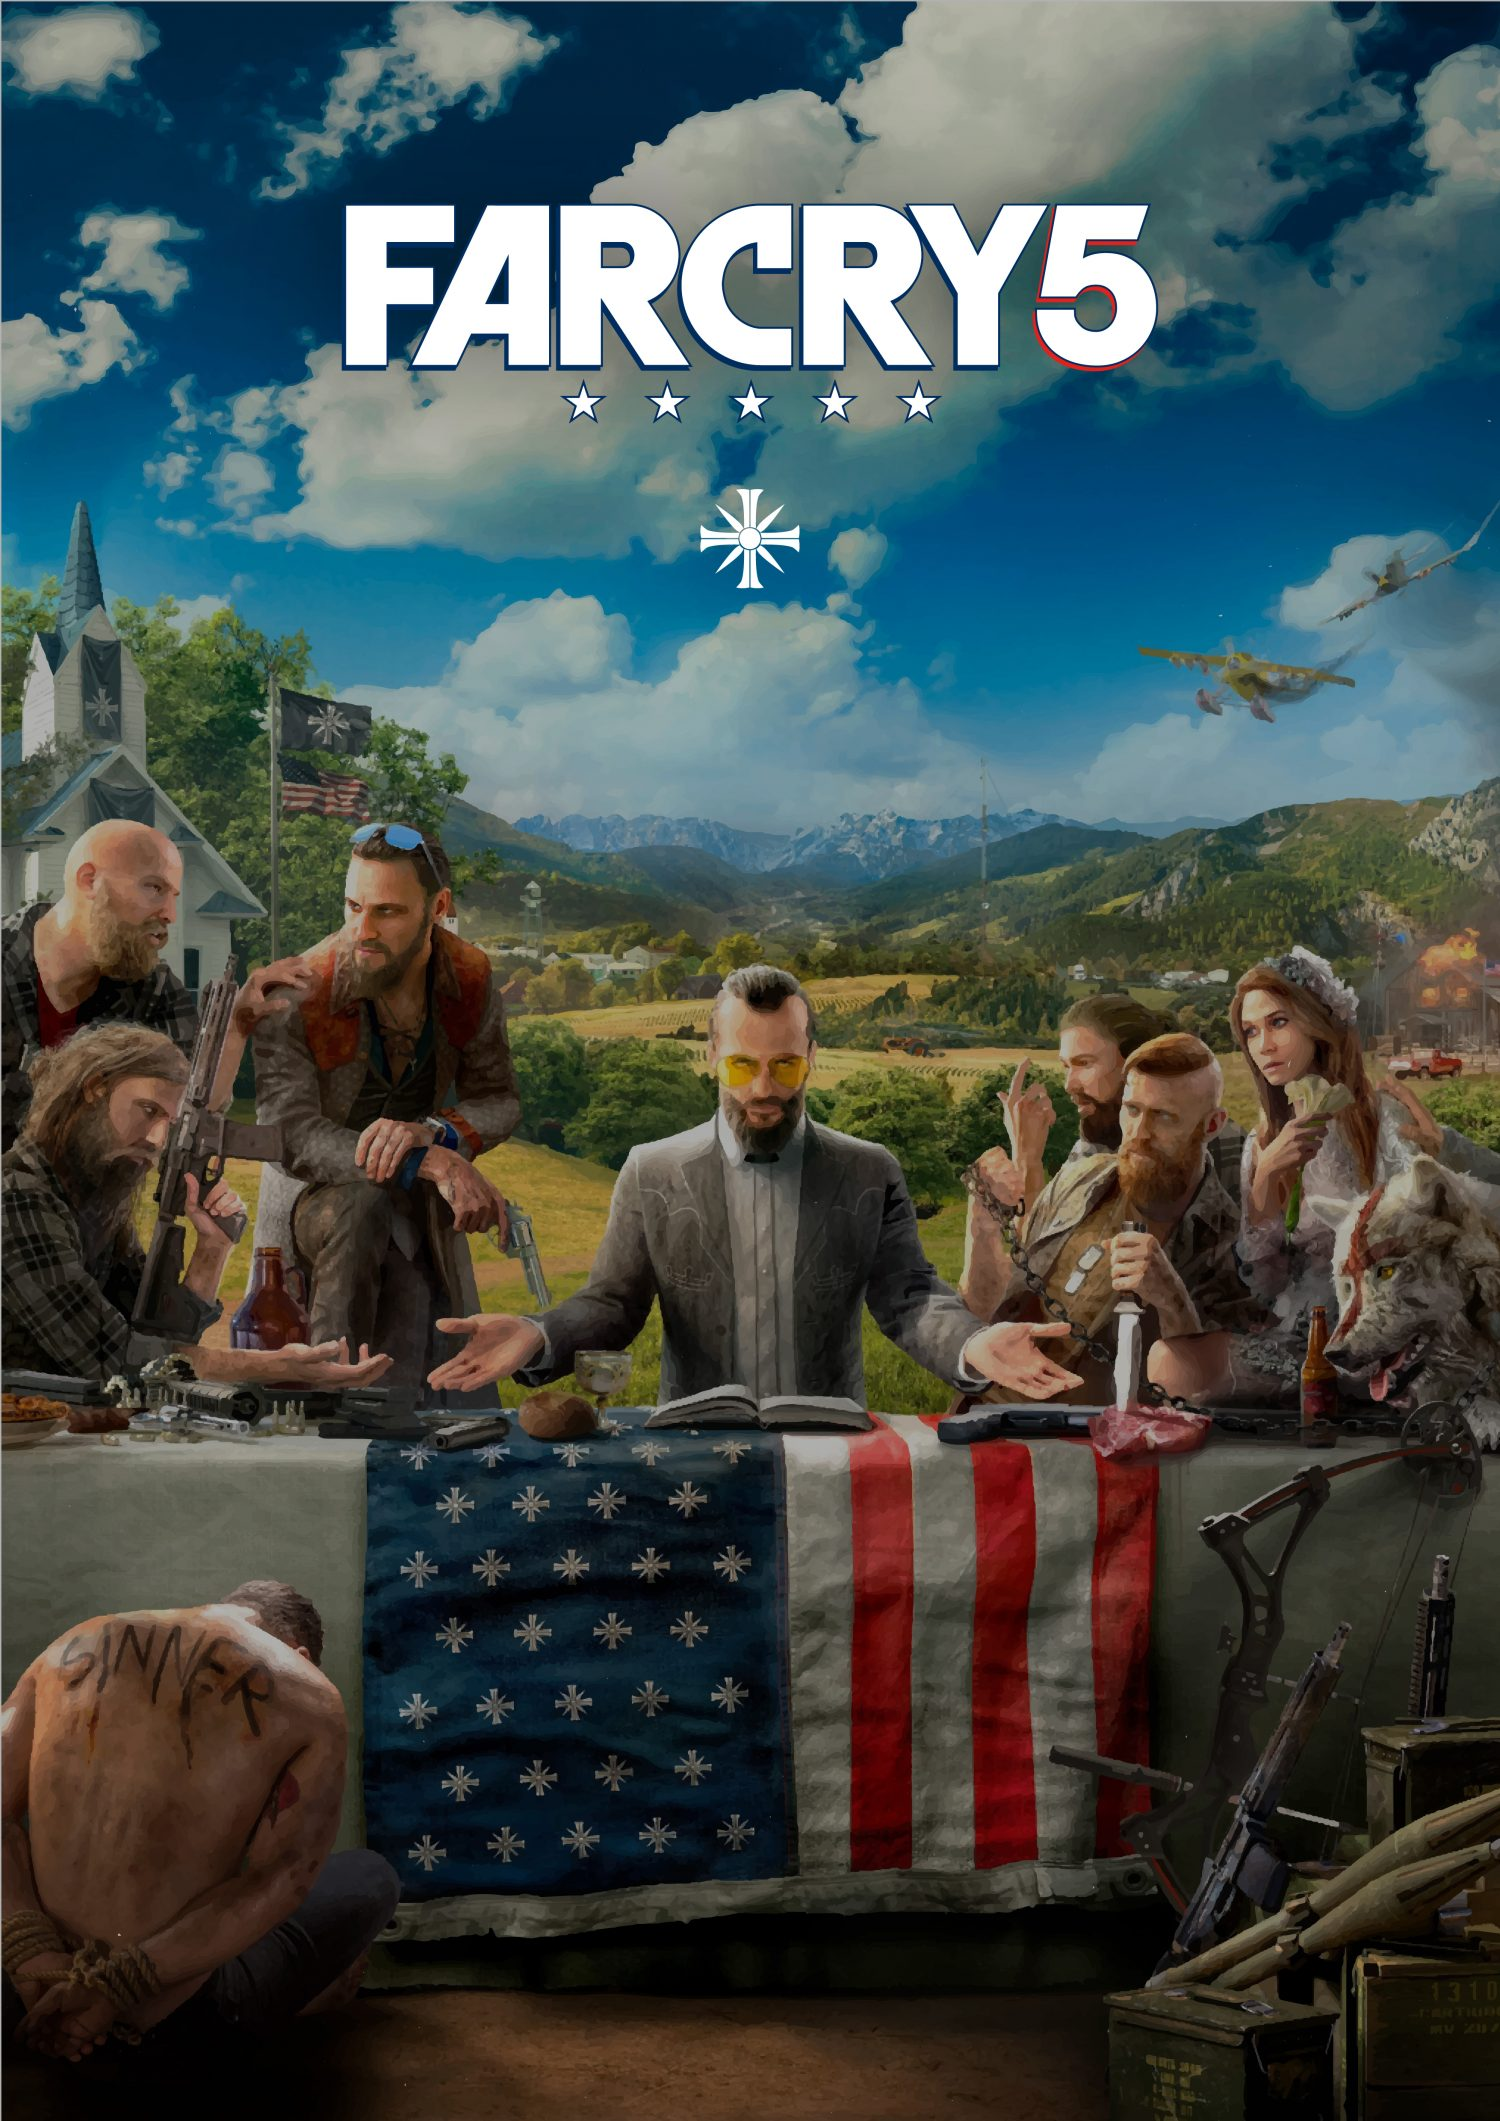 Farcry 5 Poster Posterspy